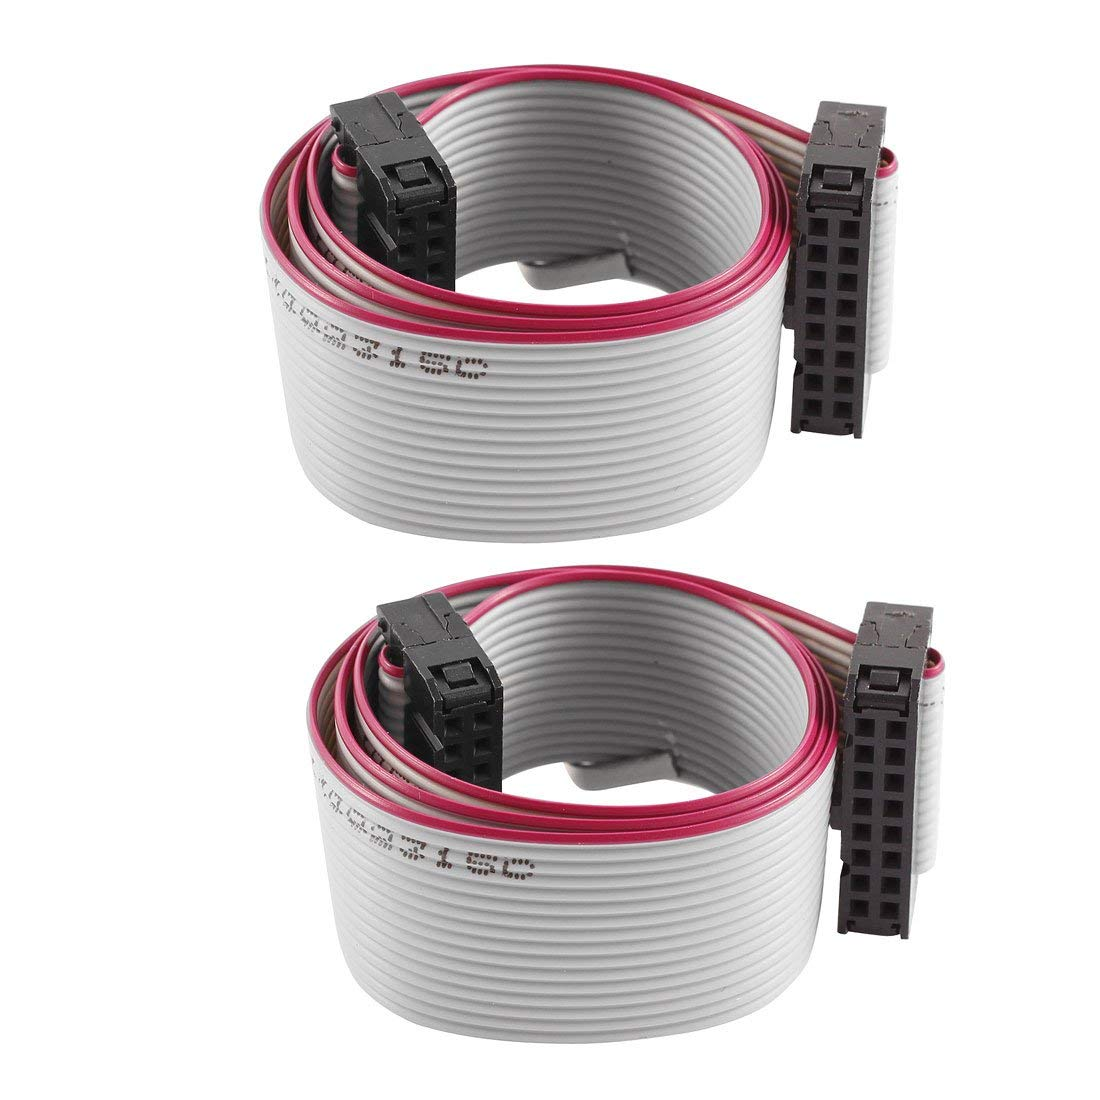 Aexit Hard Drive Bulk Cables 40cm Feamle IDC 16 Pin Extension Flat Ribbon Cable Flat Ribbon Cables 2 Pcs